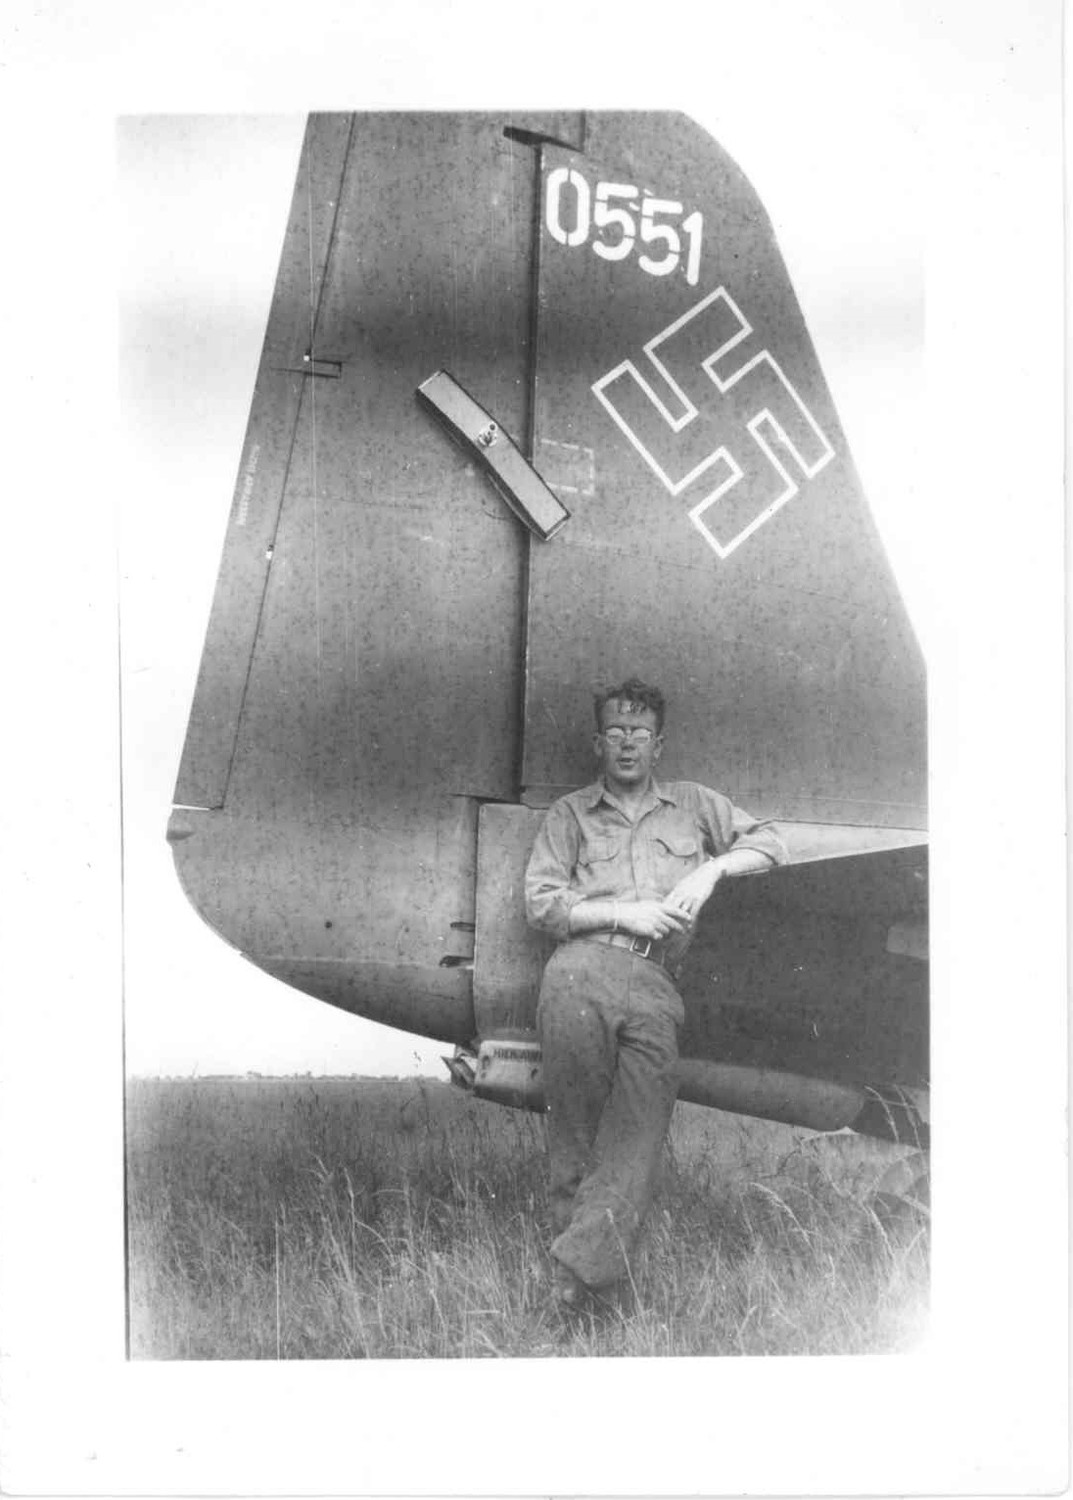 Hayes poses next to a Nazi Luftwaffe airplane that had been grounded.